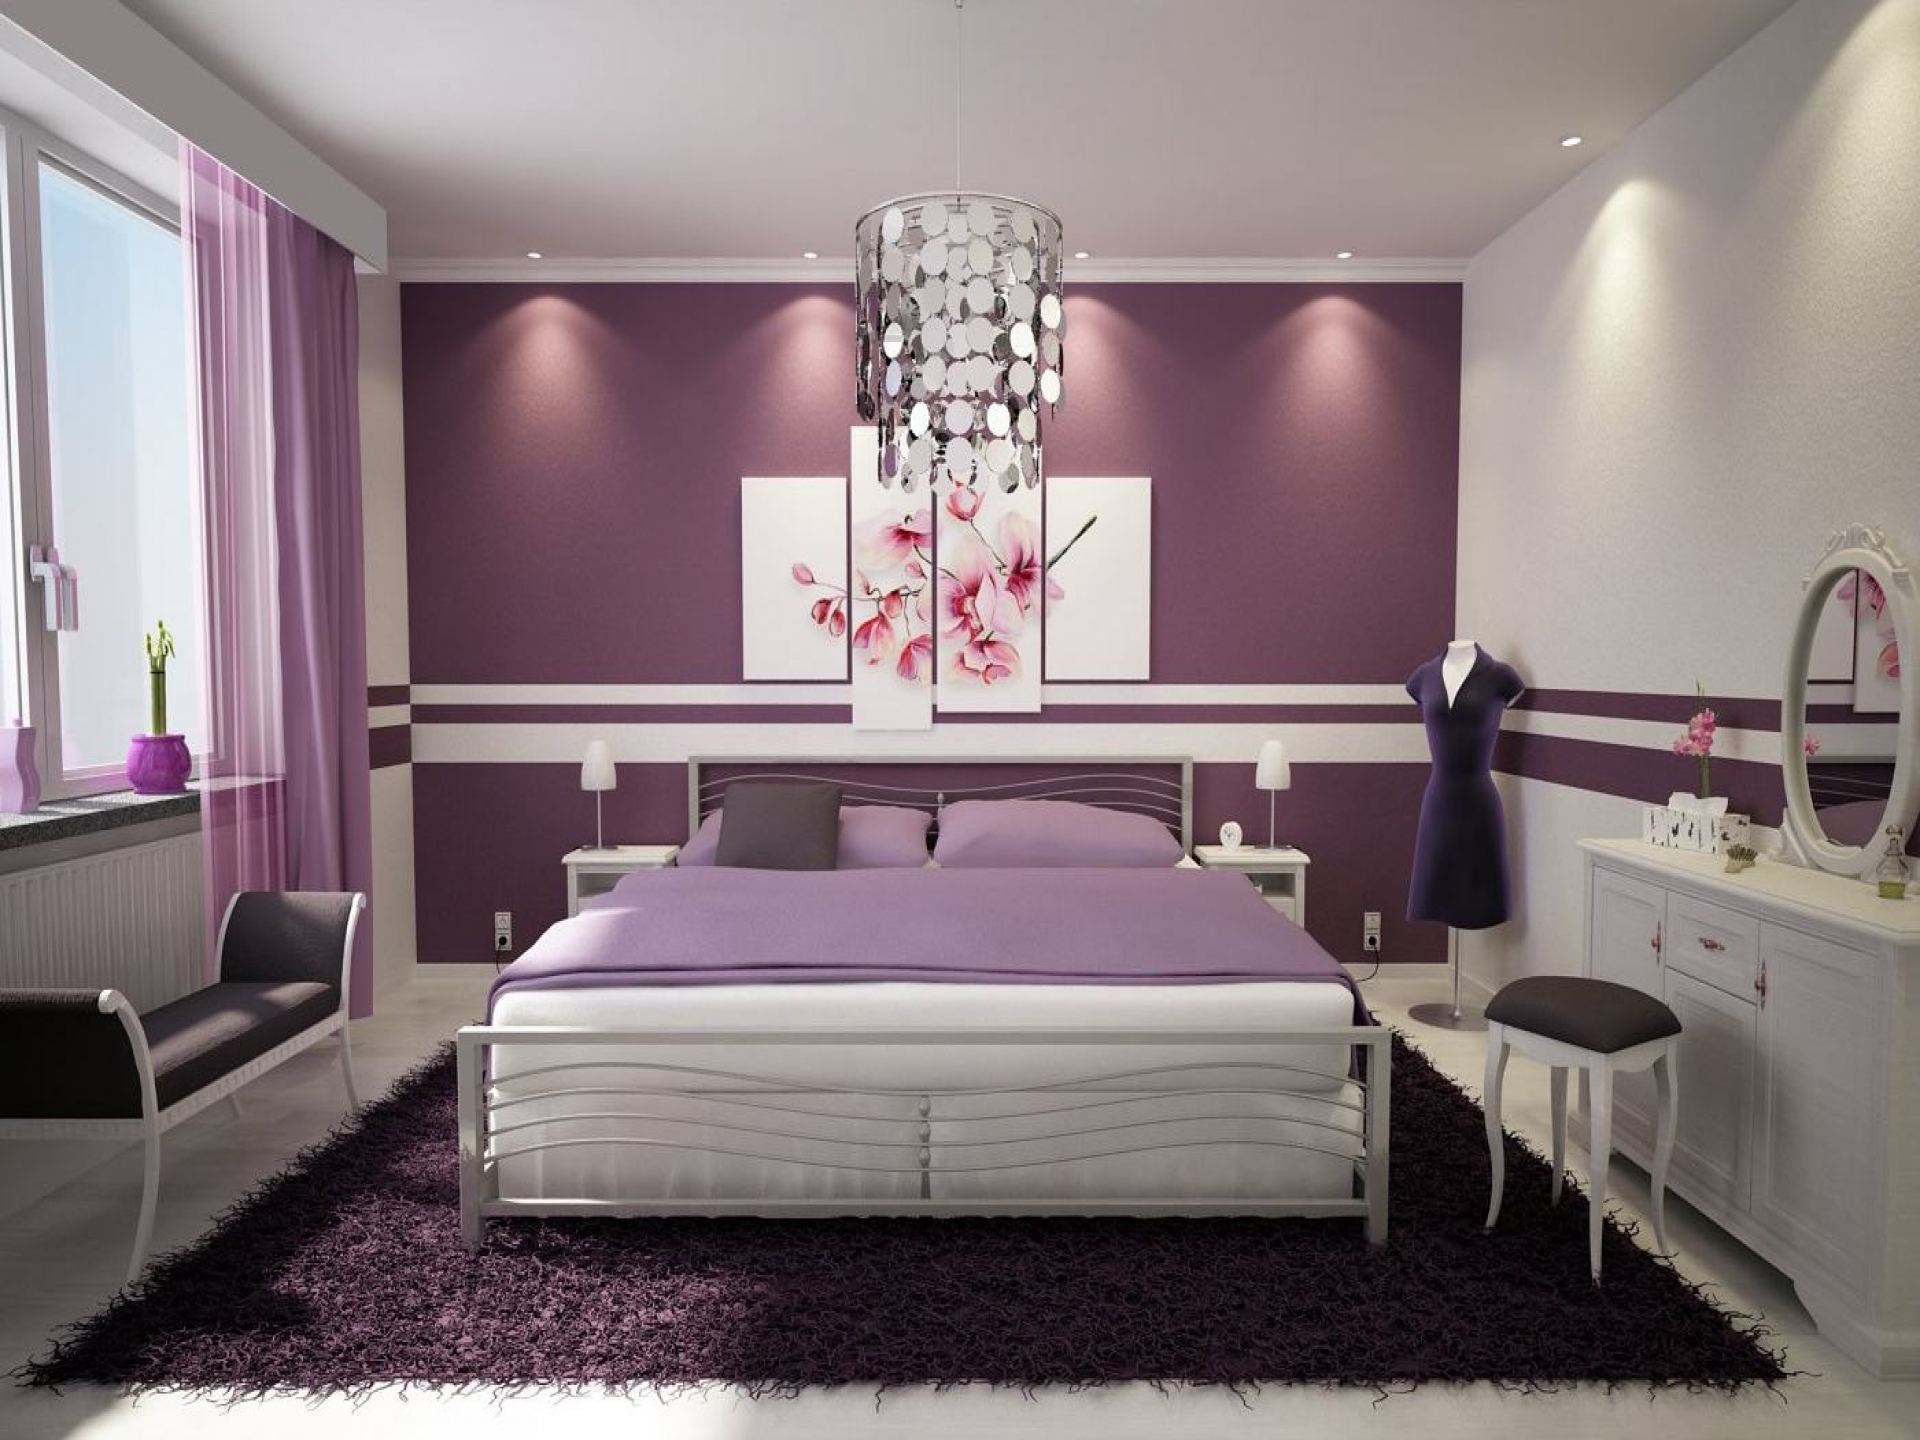 Cool bedroom decorating ideas for teenage girls Cuttingedgeredlands 17 Magnificent Purple Bedrooms That Are Worth Seeing 17 Magnificent Purple Bedrooms That